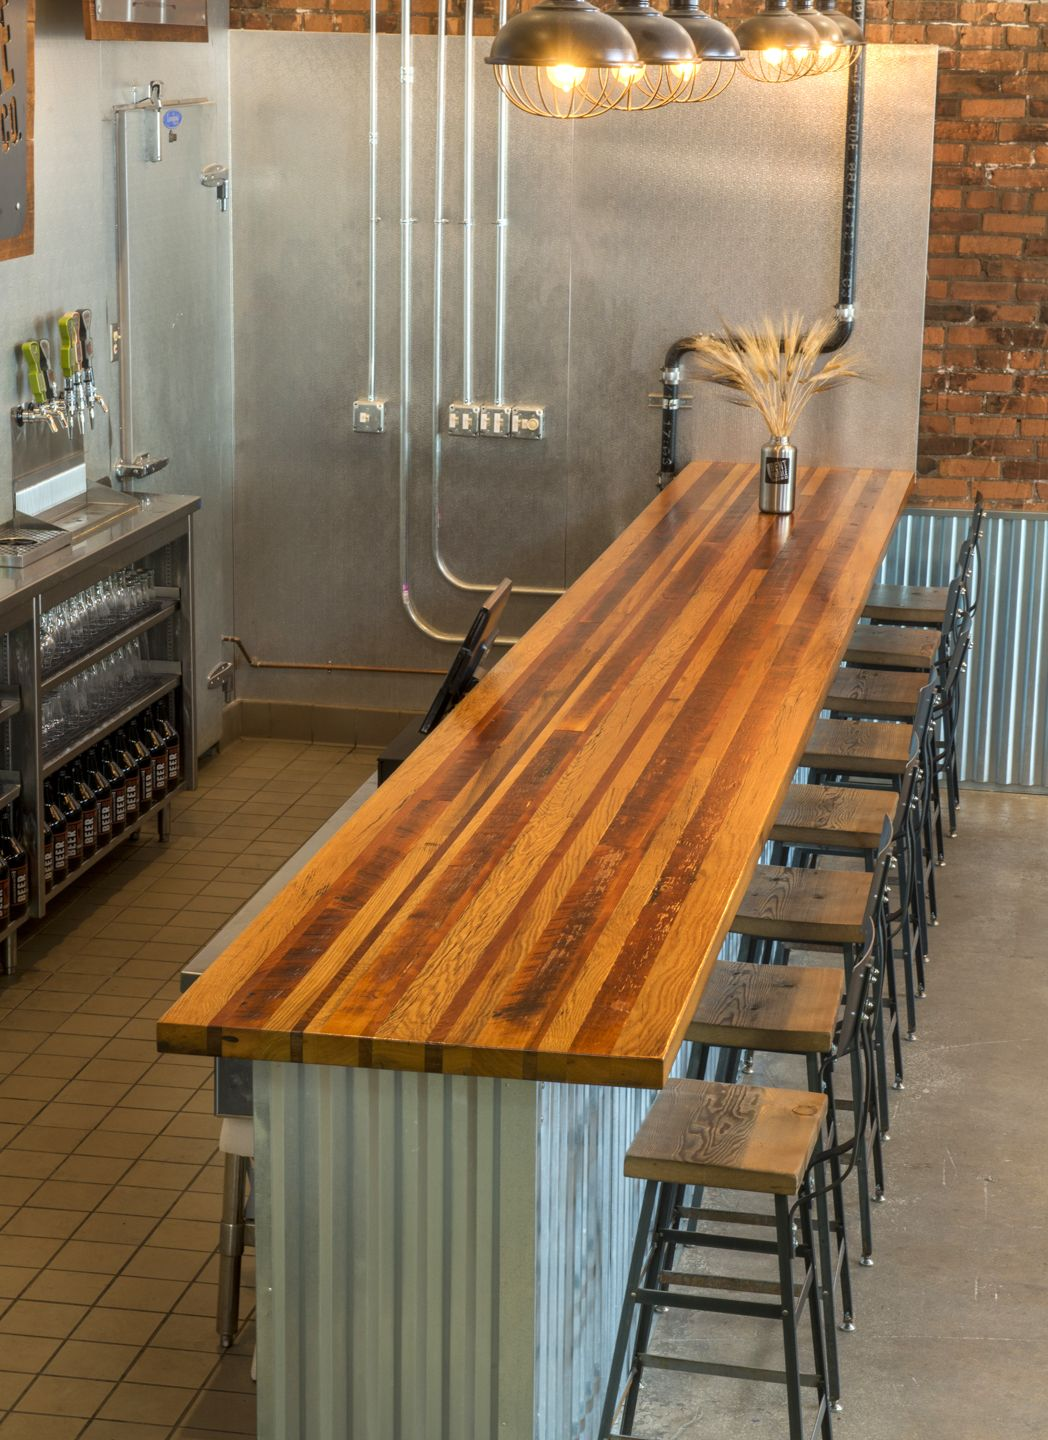 Bestofpicture.com - Images: Reclaimed Wood Bar - Bestofpicture.com - Images: Reclaimed Wood Bar Clairvoyant